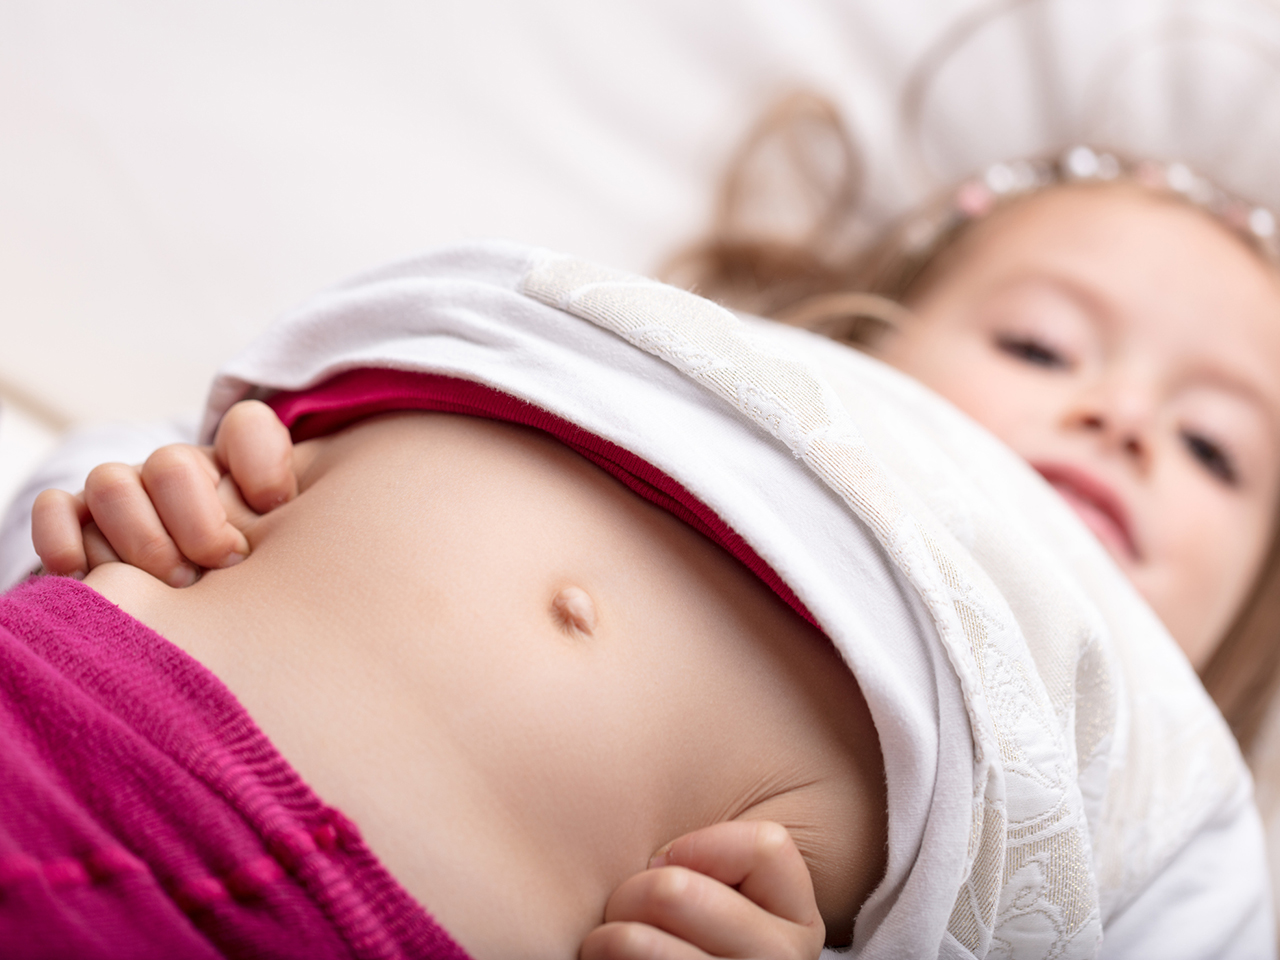 Little girl pushing out her belly while she squeezes her sides